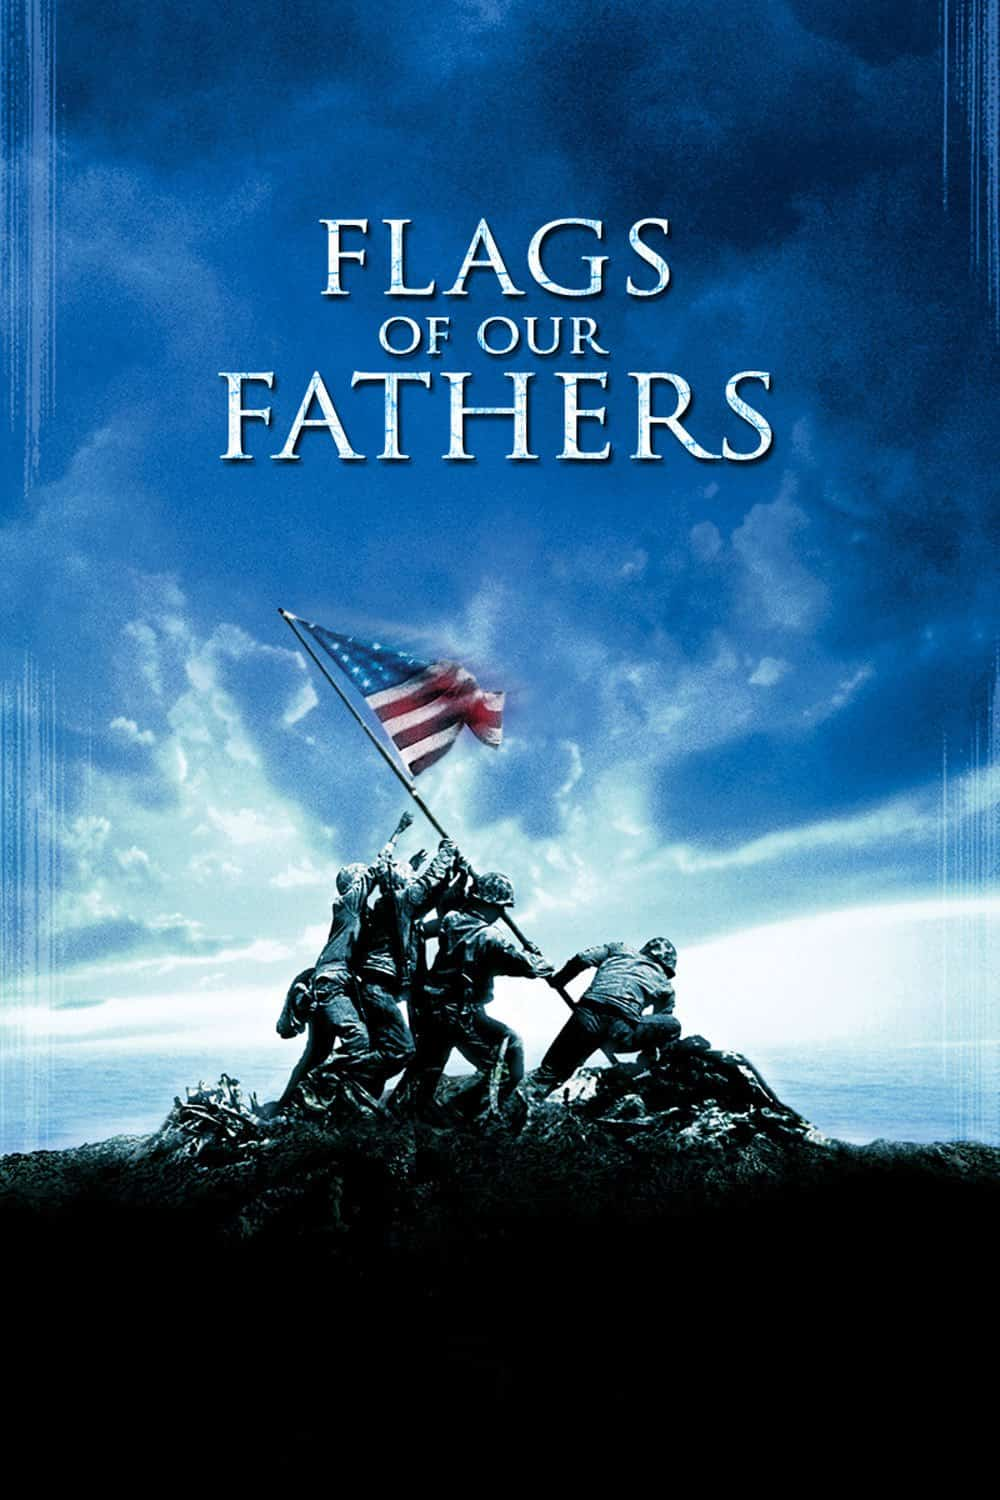 Flags of Our Fathers, 2006